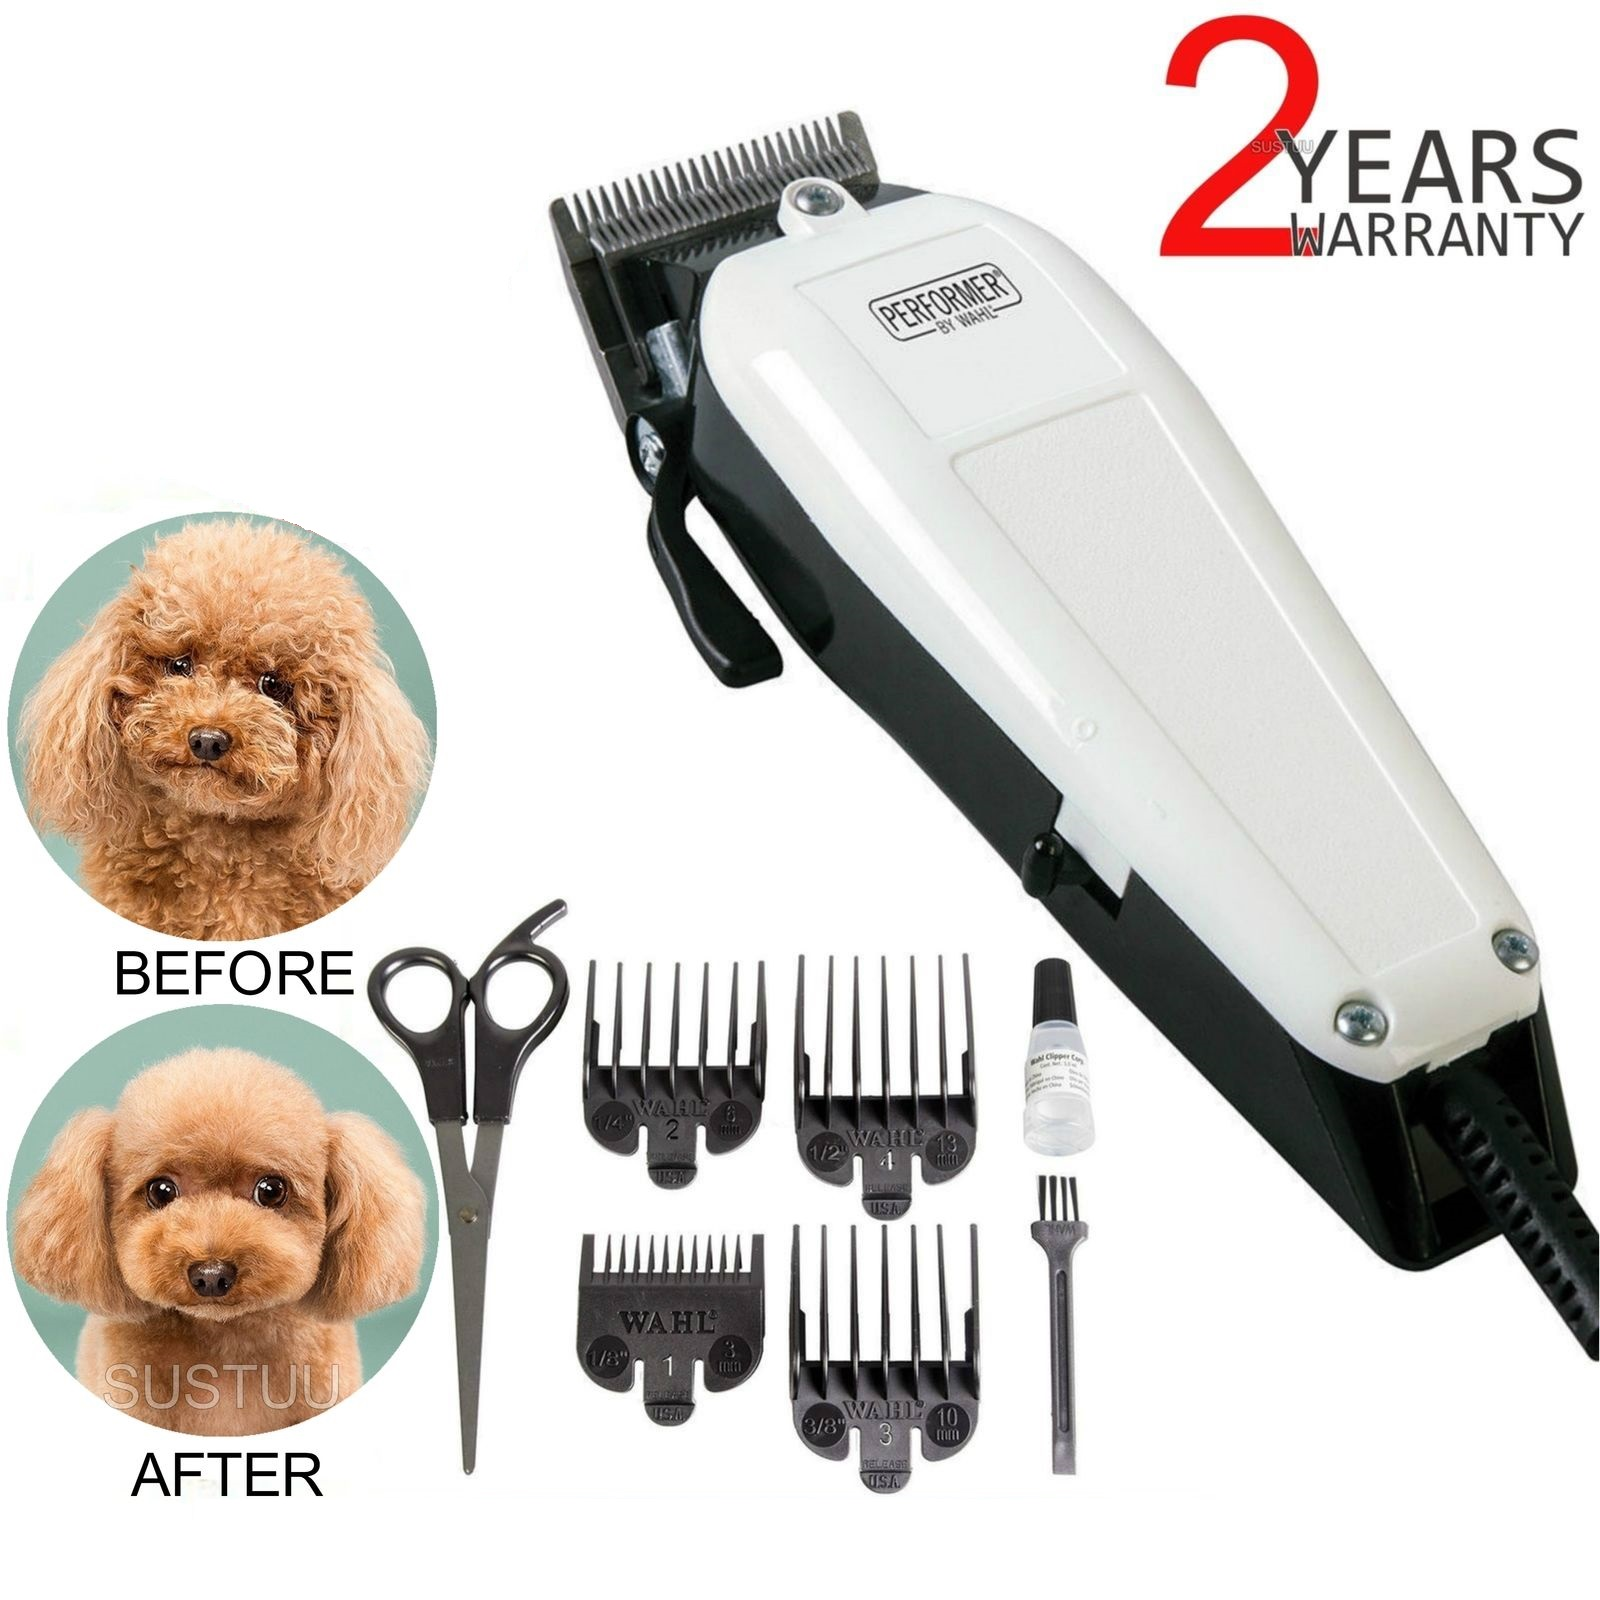 Wahl Performer Dog Animal Shaver Clipper Kit | 4xCombs | Carbon Steel Blades | Scissor